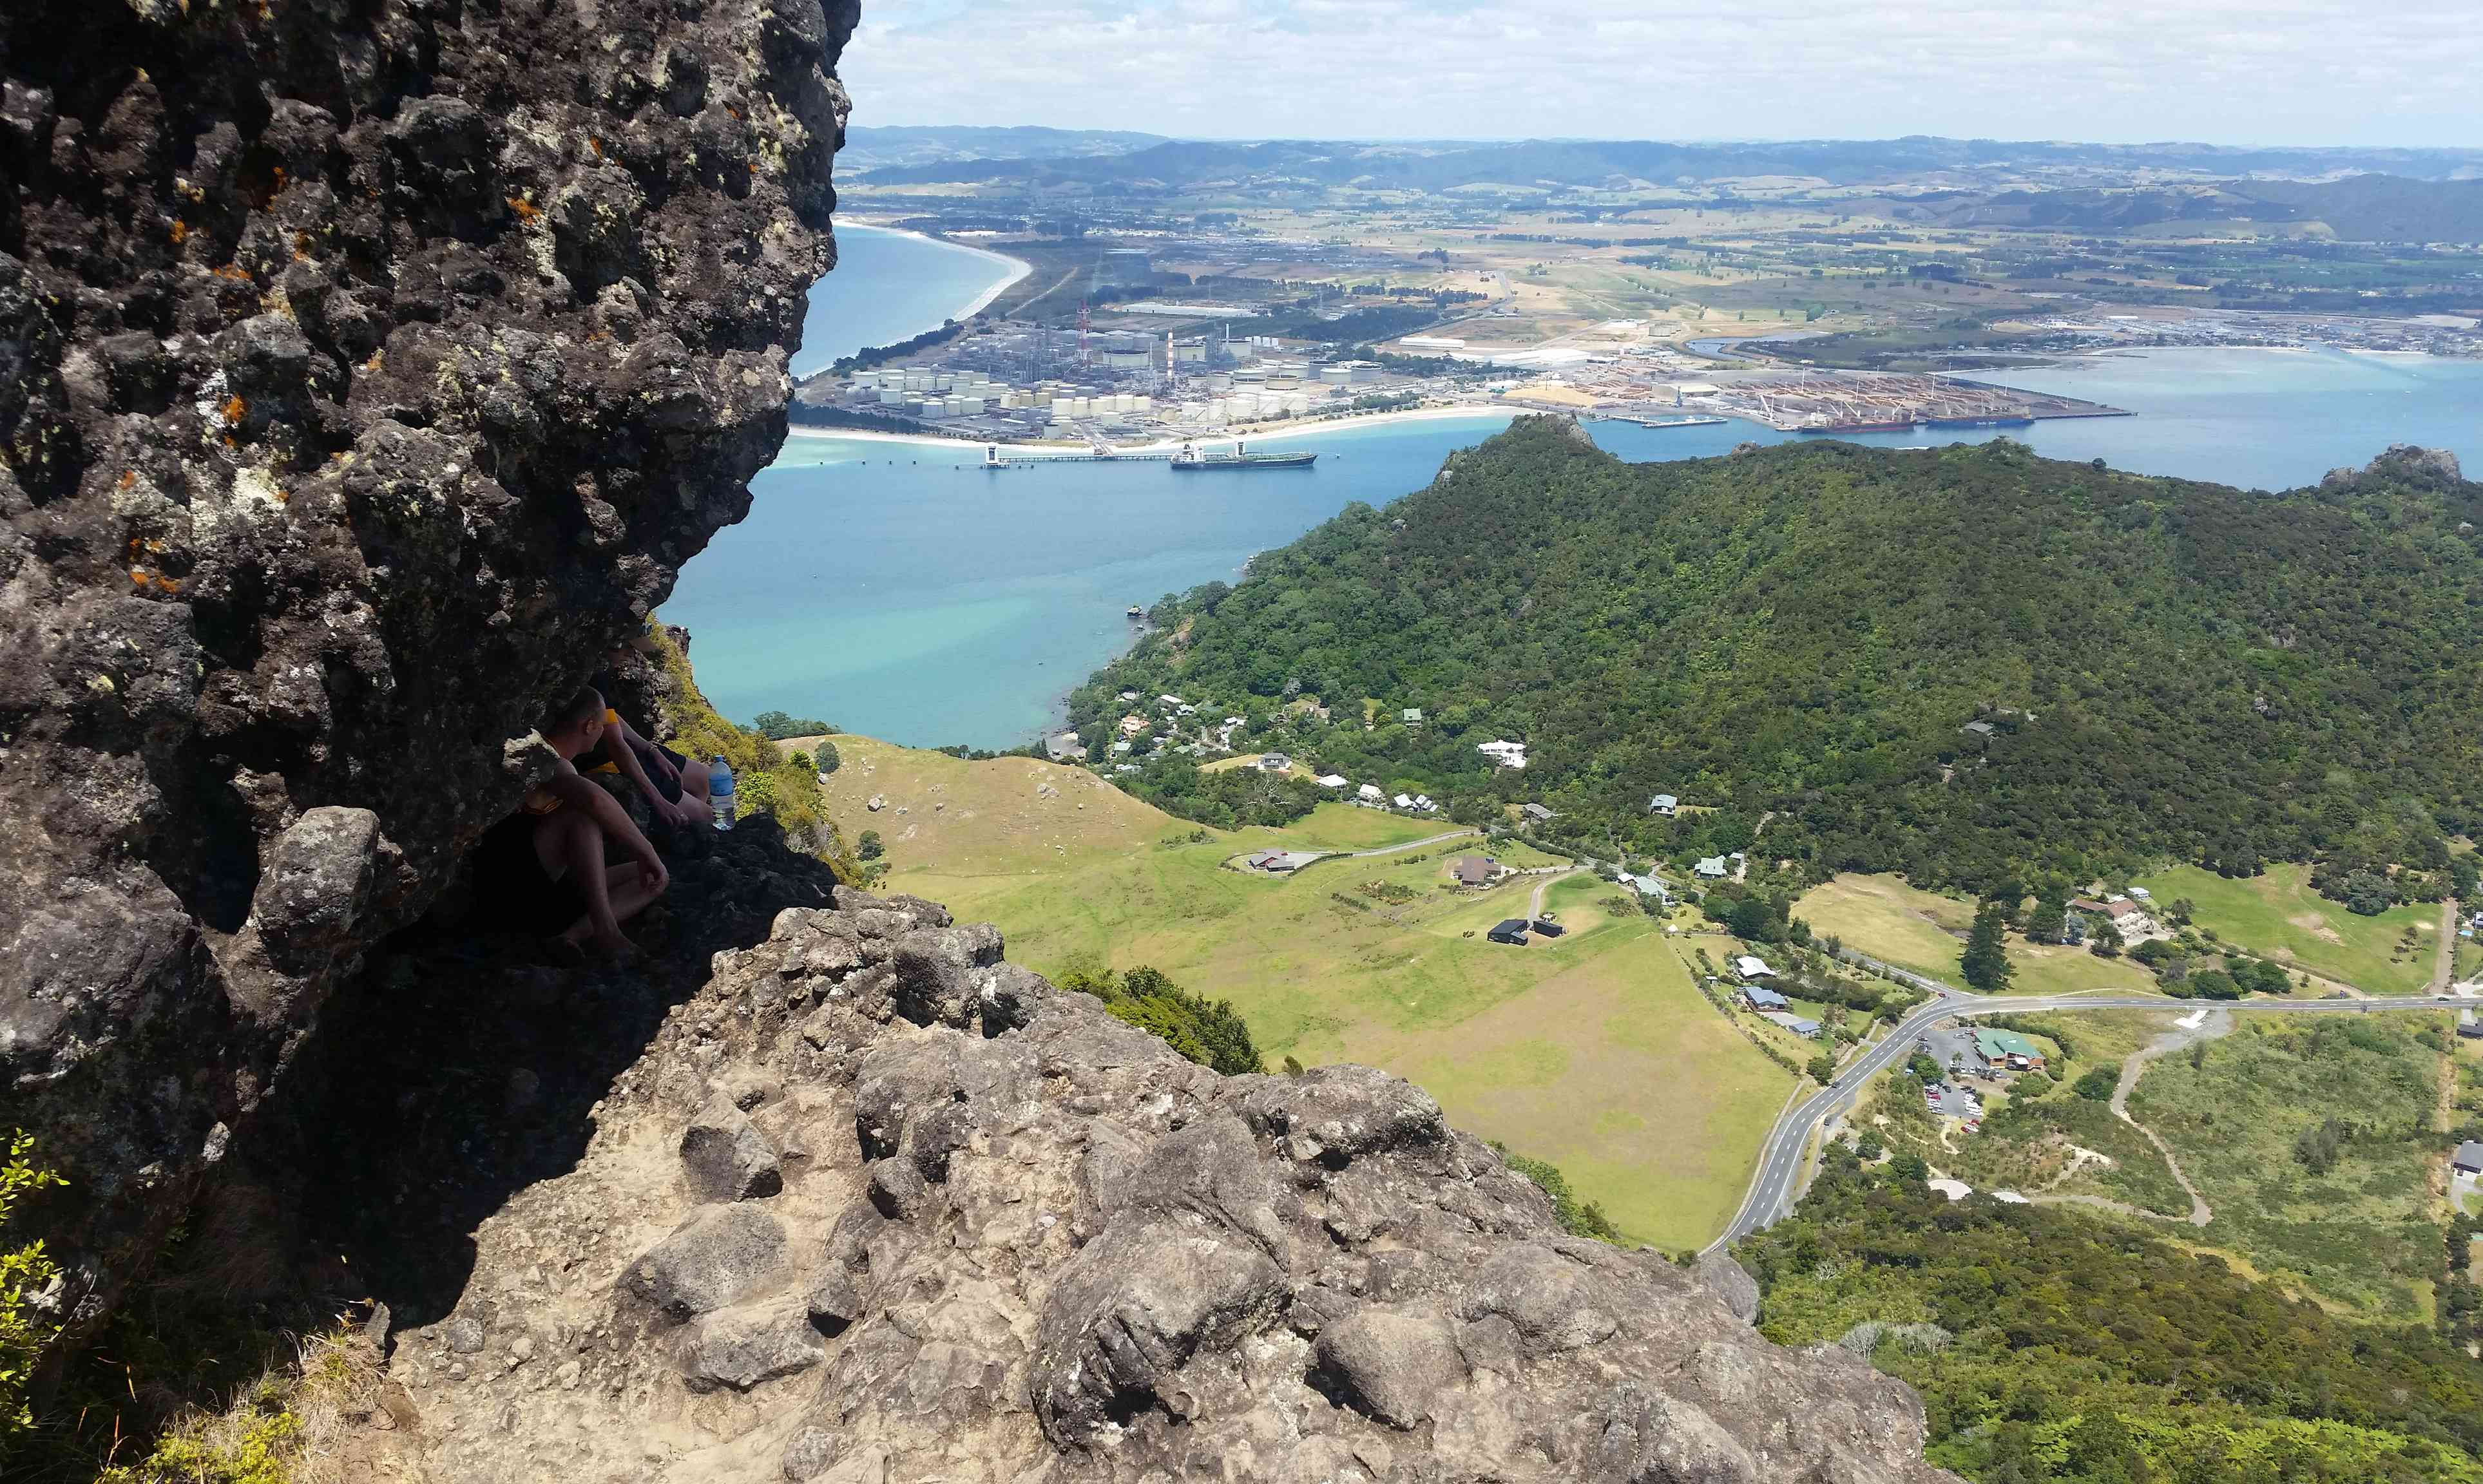 View from Mt. Manaia